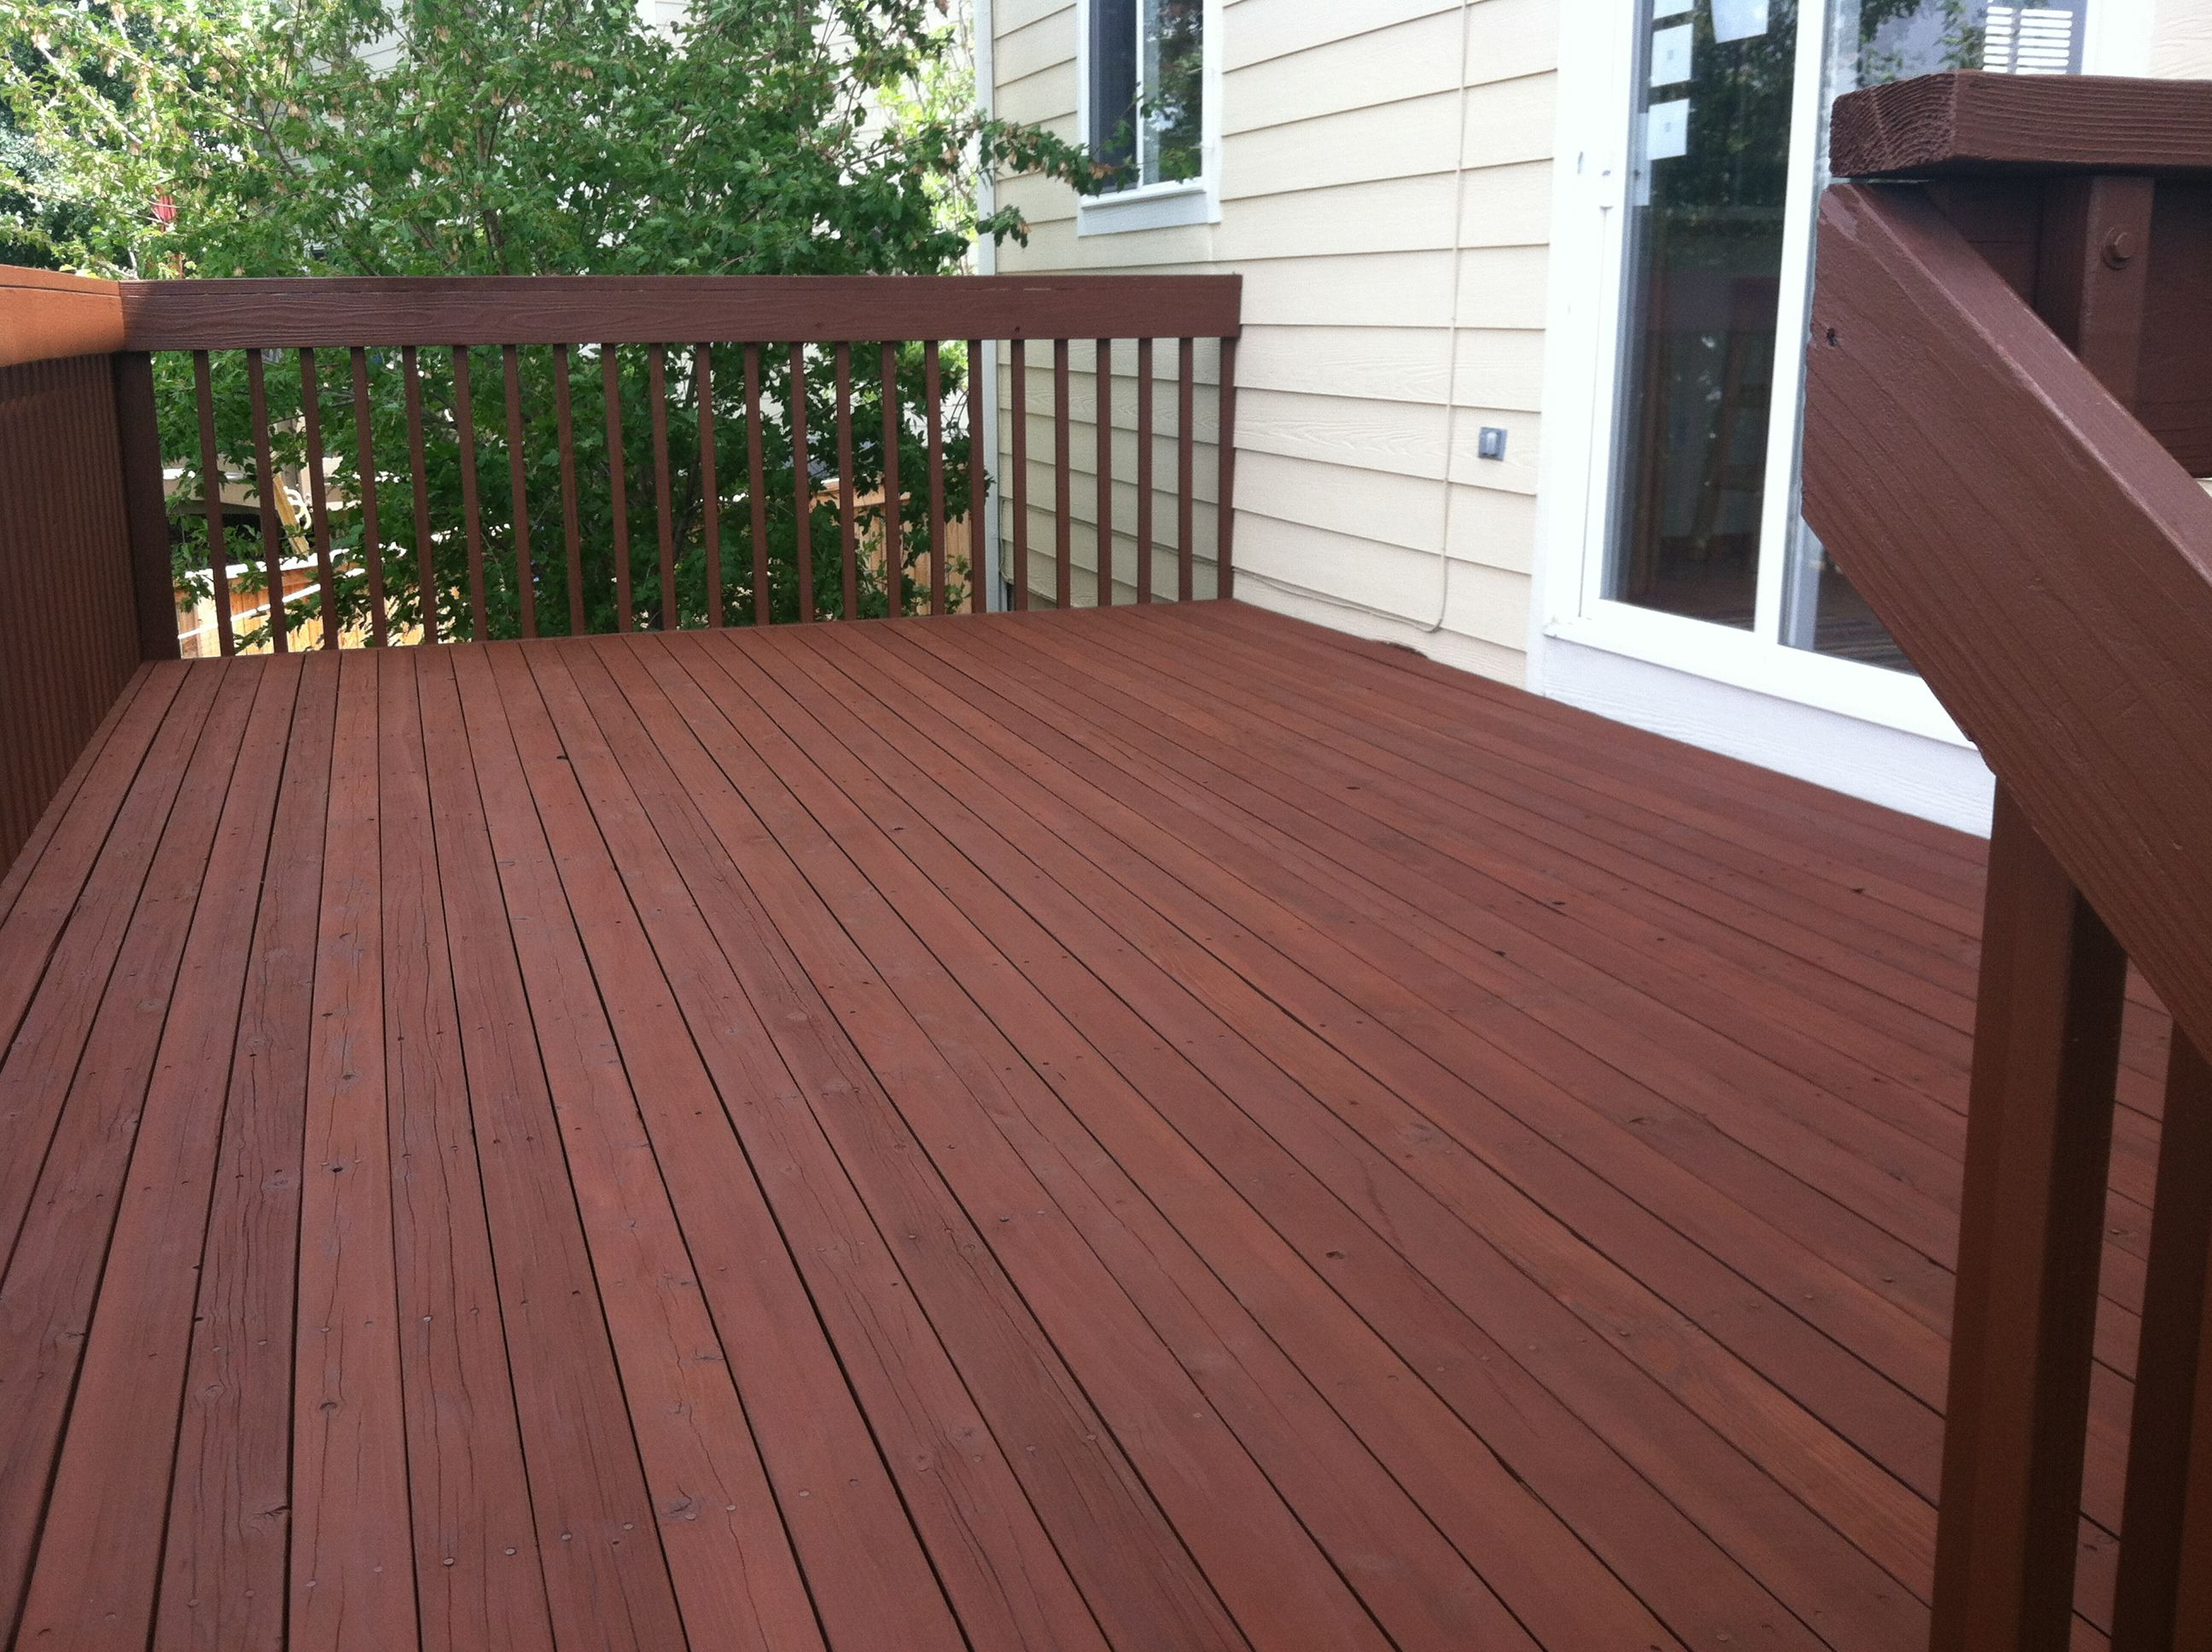 Cabot Deck Stain In Semi Solid Oak Brown Deck Stain Colors